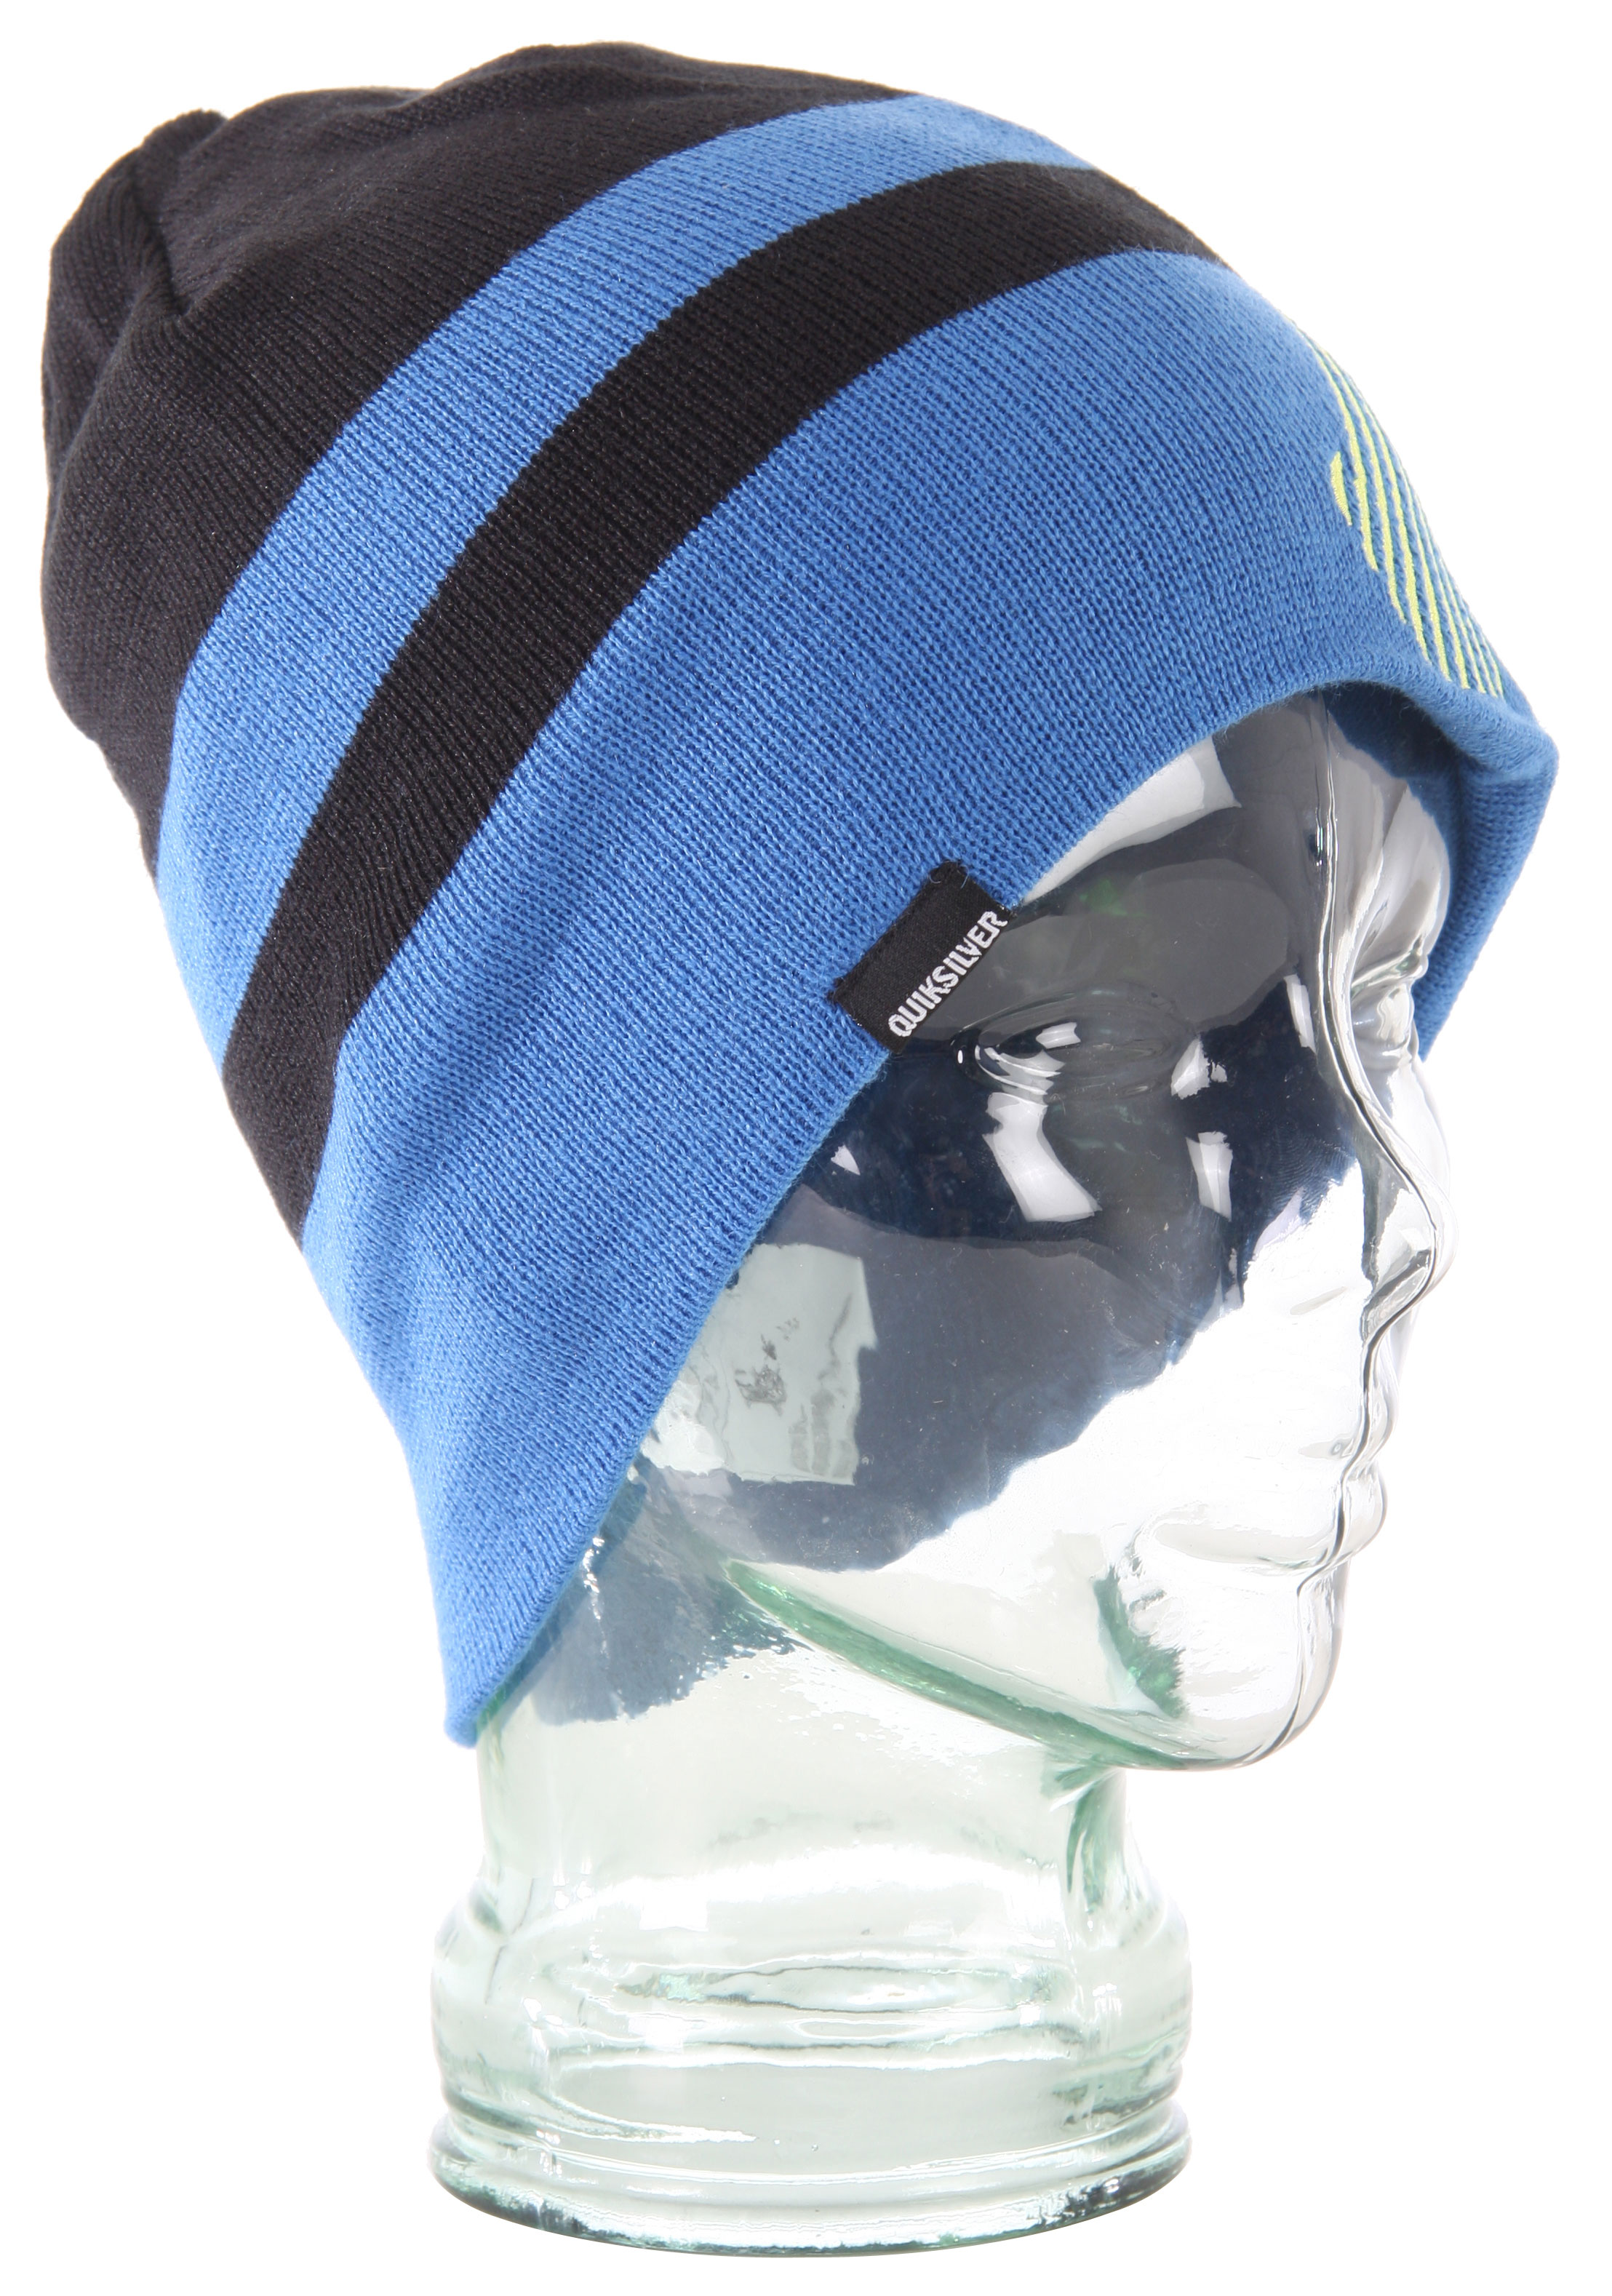 "Surf A jibber for the noggin, this knit cap has looks and a name that says it all.Key Features of the Quiksilver Jibber Beanie: 100% acrylic Reversible flat knit beanie Large striped exterior w/logo embroidery Solid interior with Quiksilver flag label 9.5"" fit One size only - $13.95"